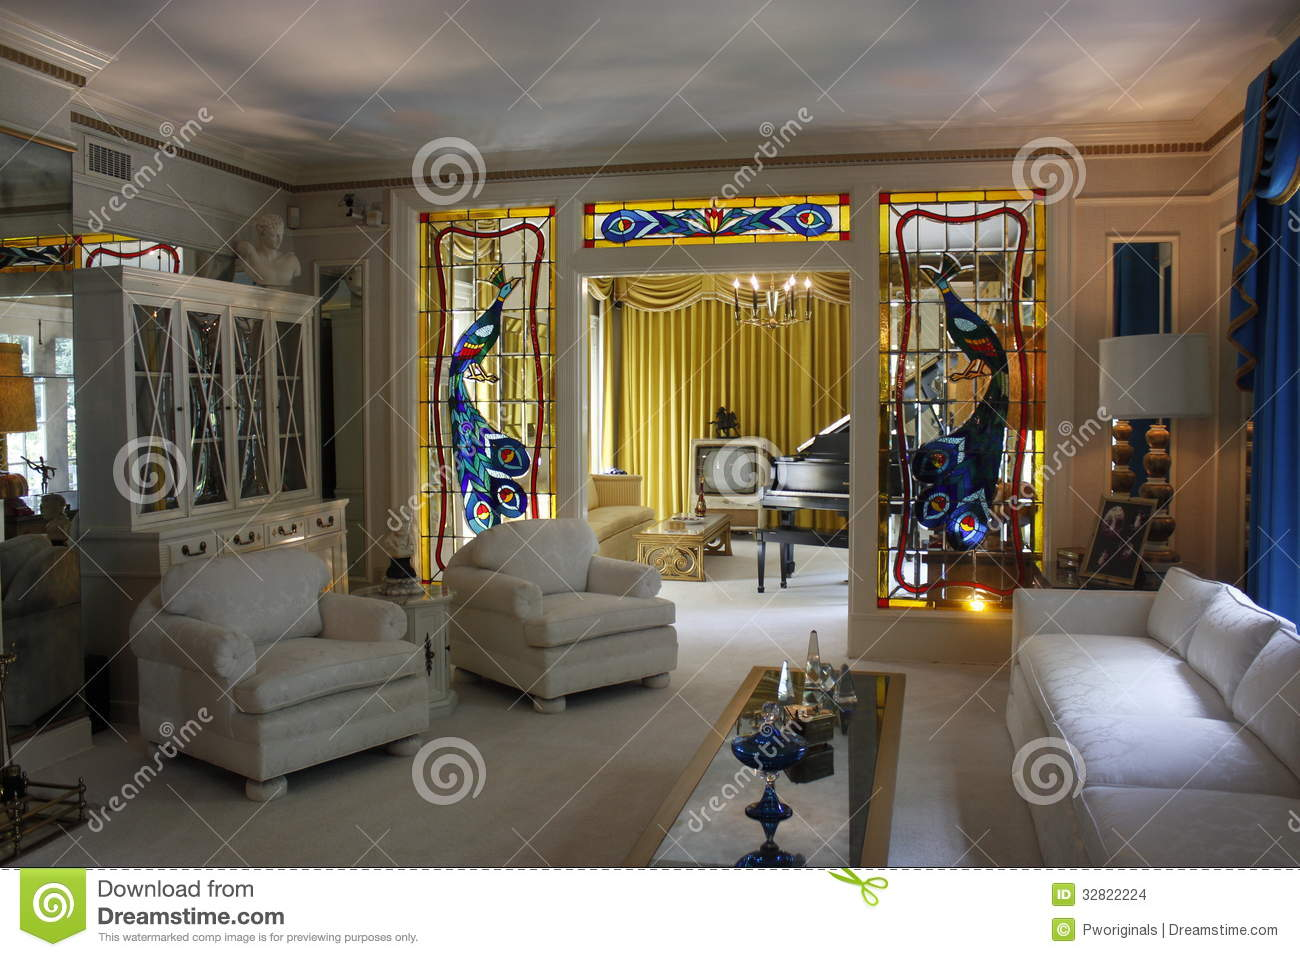 Graceland Mansion Editorial Stock Image Image Of Piano 32822224